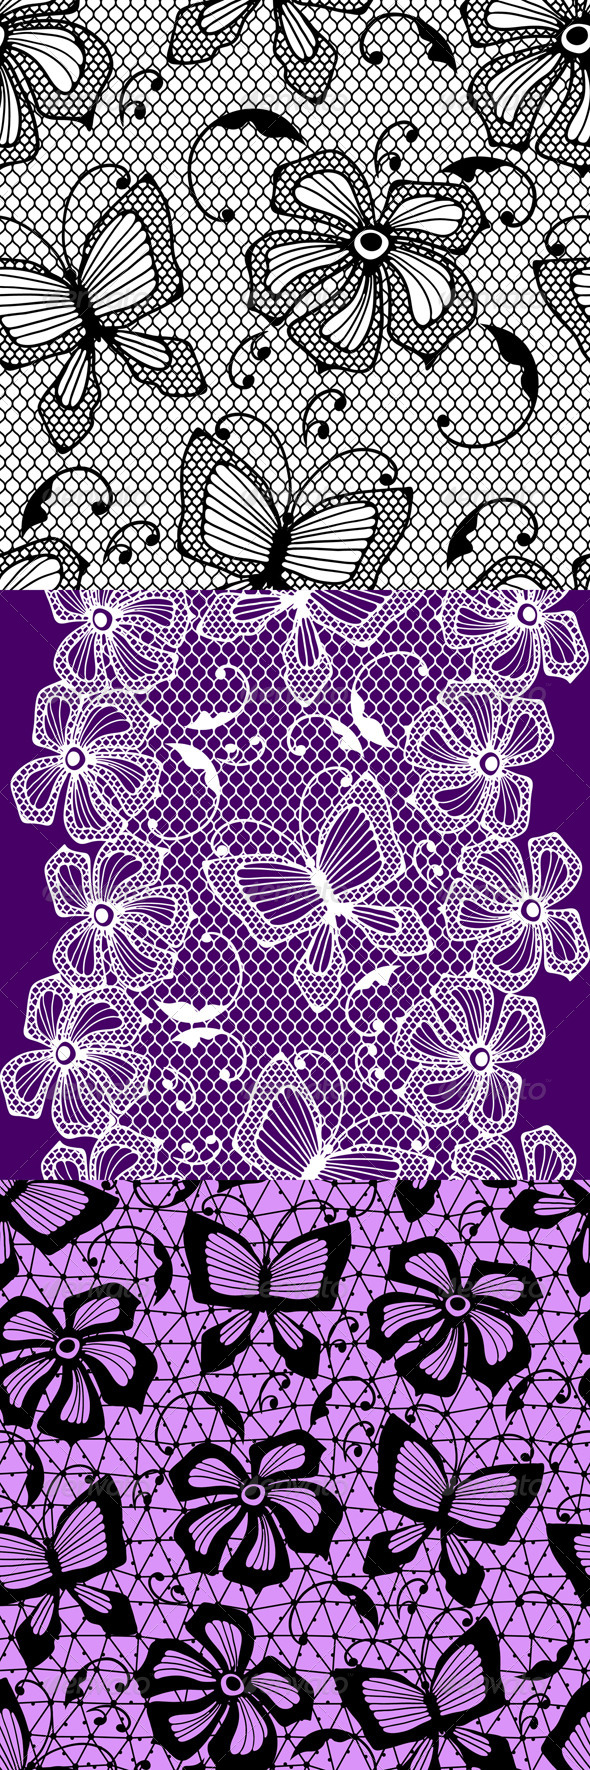 Seamless Lace Patterns with Butterflies. - Patterns Decorative